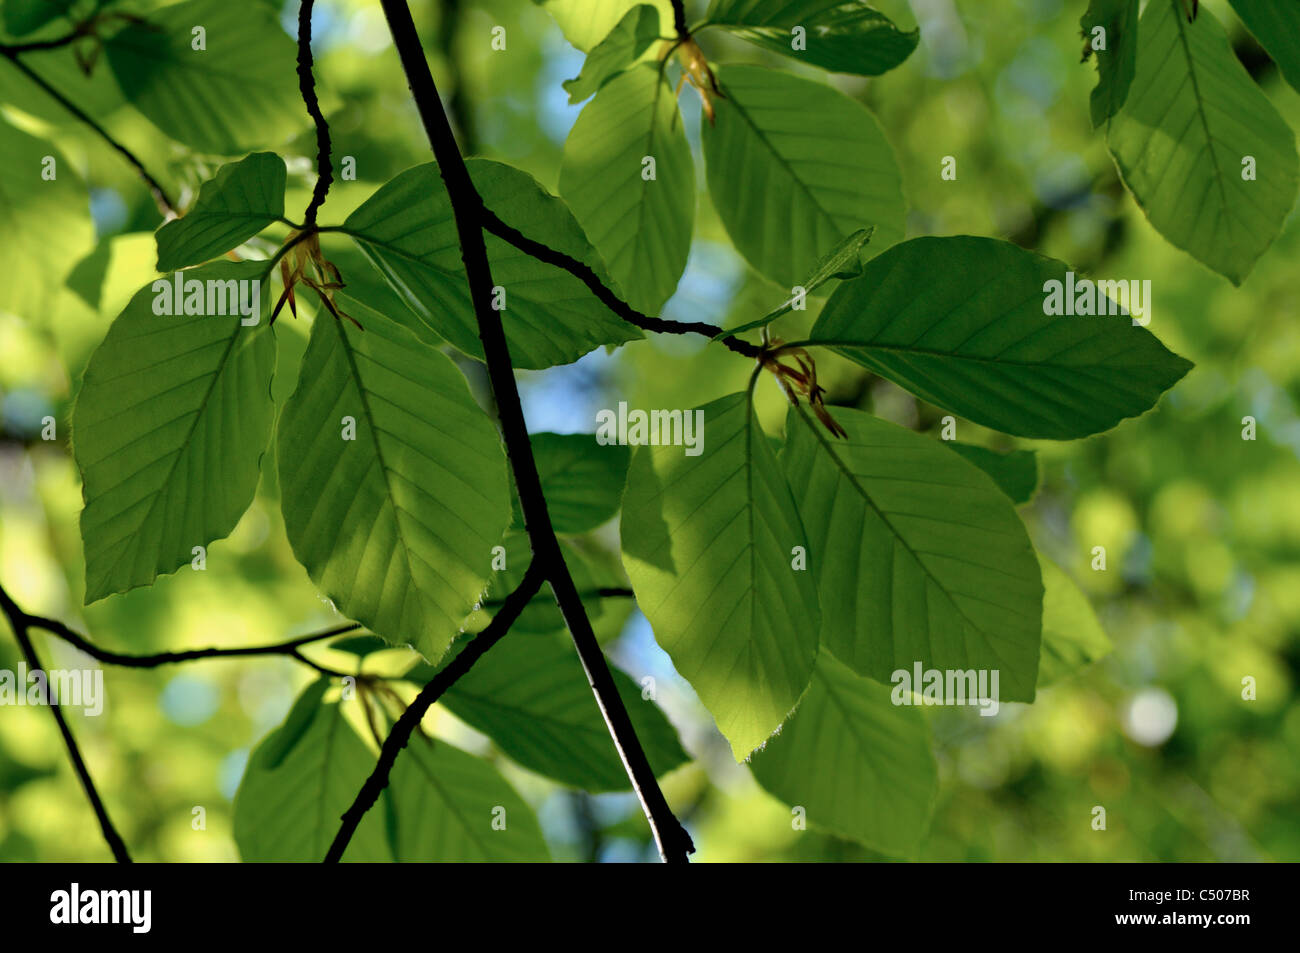 Tree leaves with back light - Stock Image